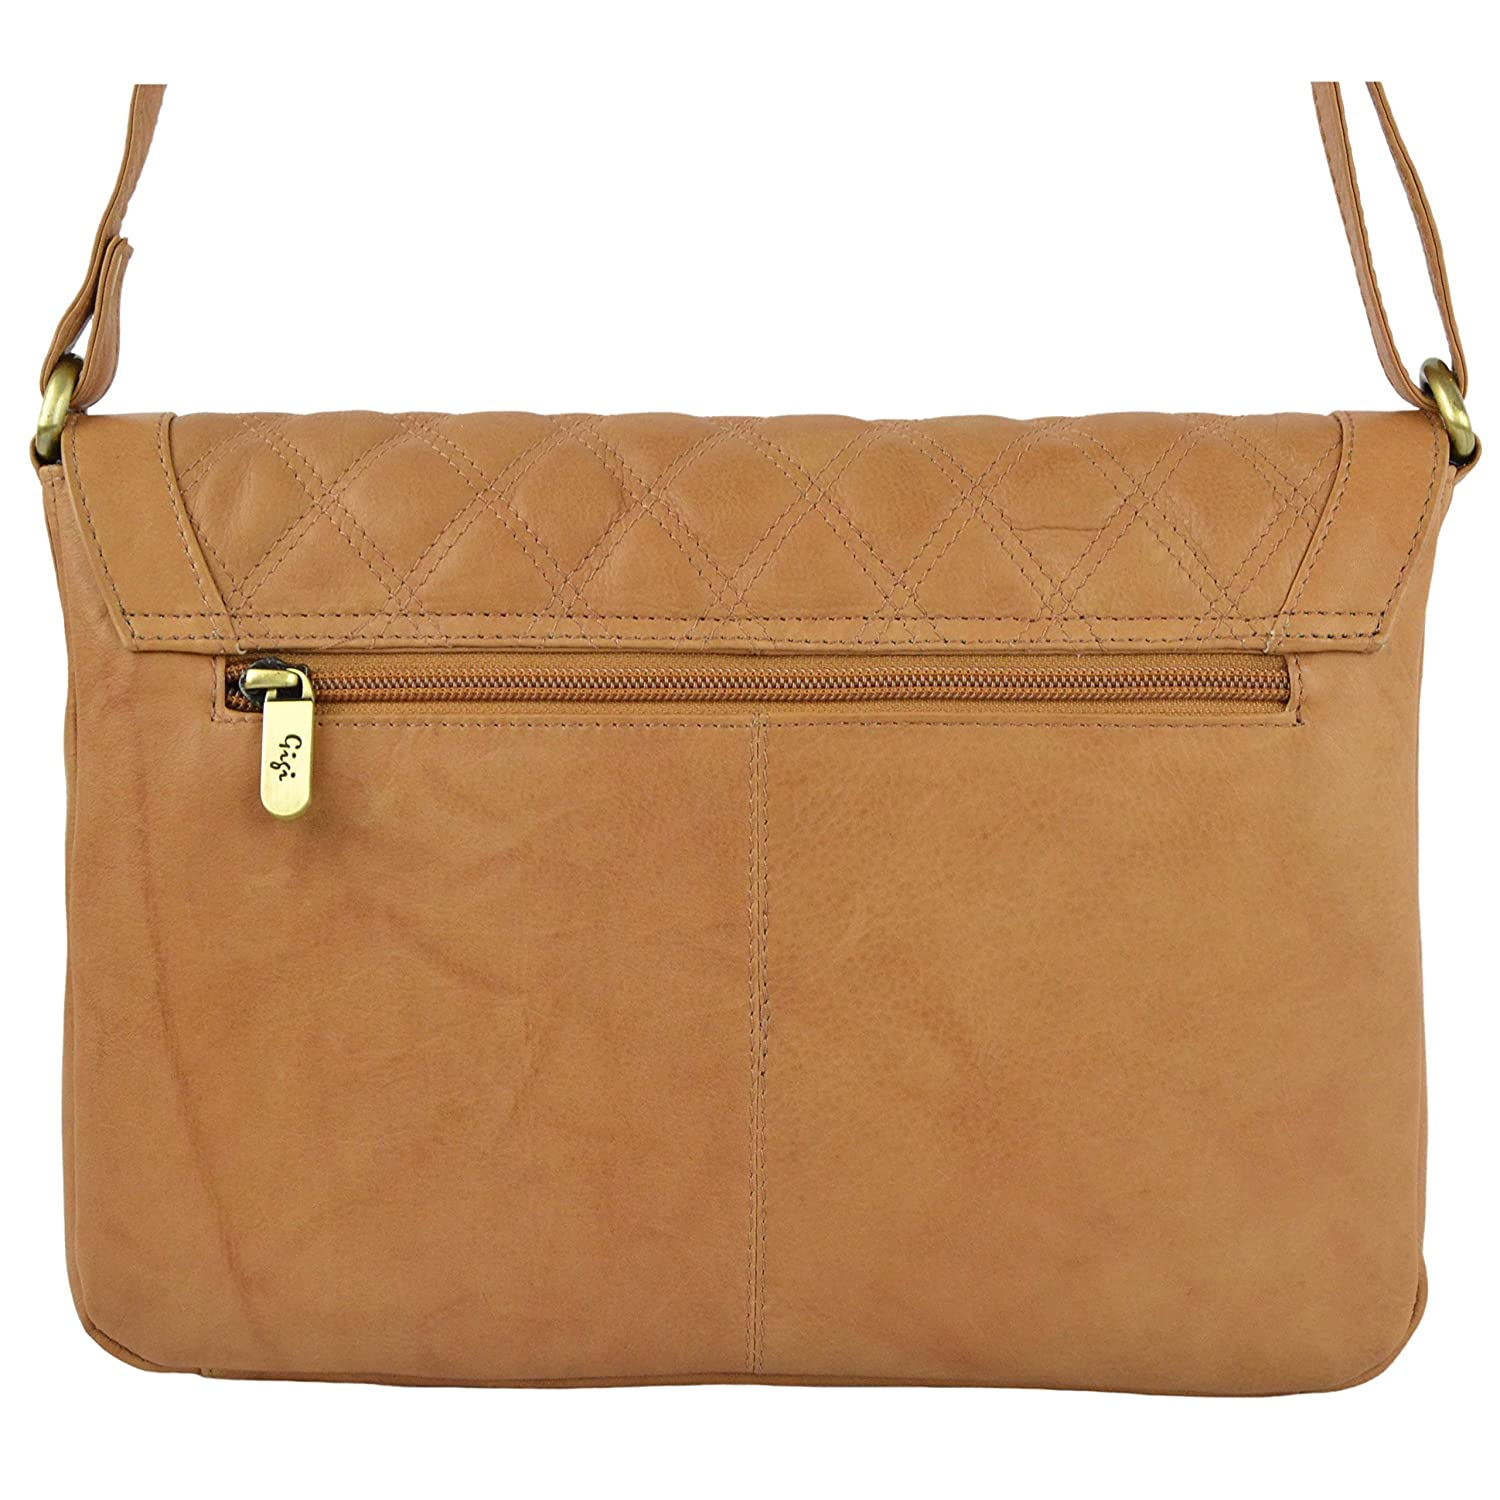 NEW Ladies Quilted LEATHER Cross Body HANDBAG by GiGi OTHELLO Collection Classic